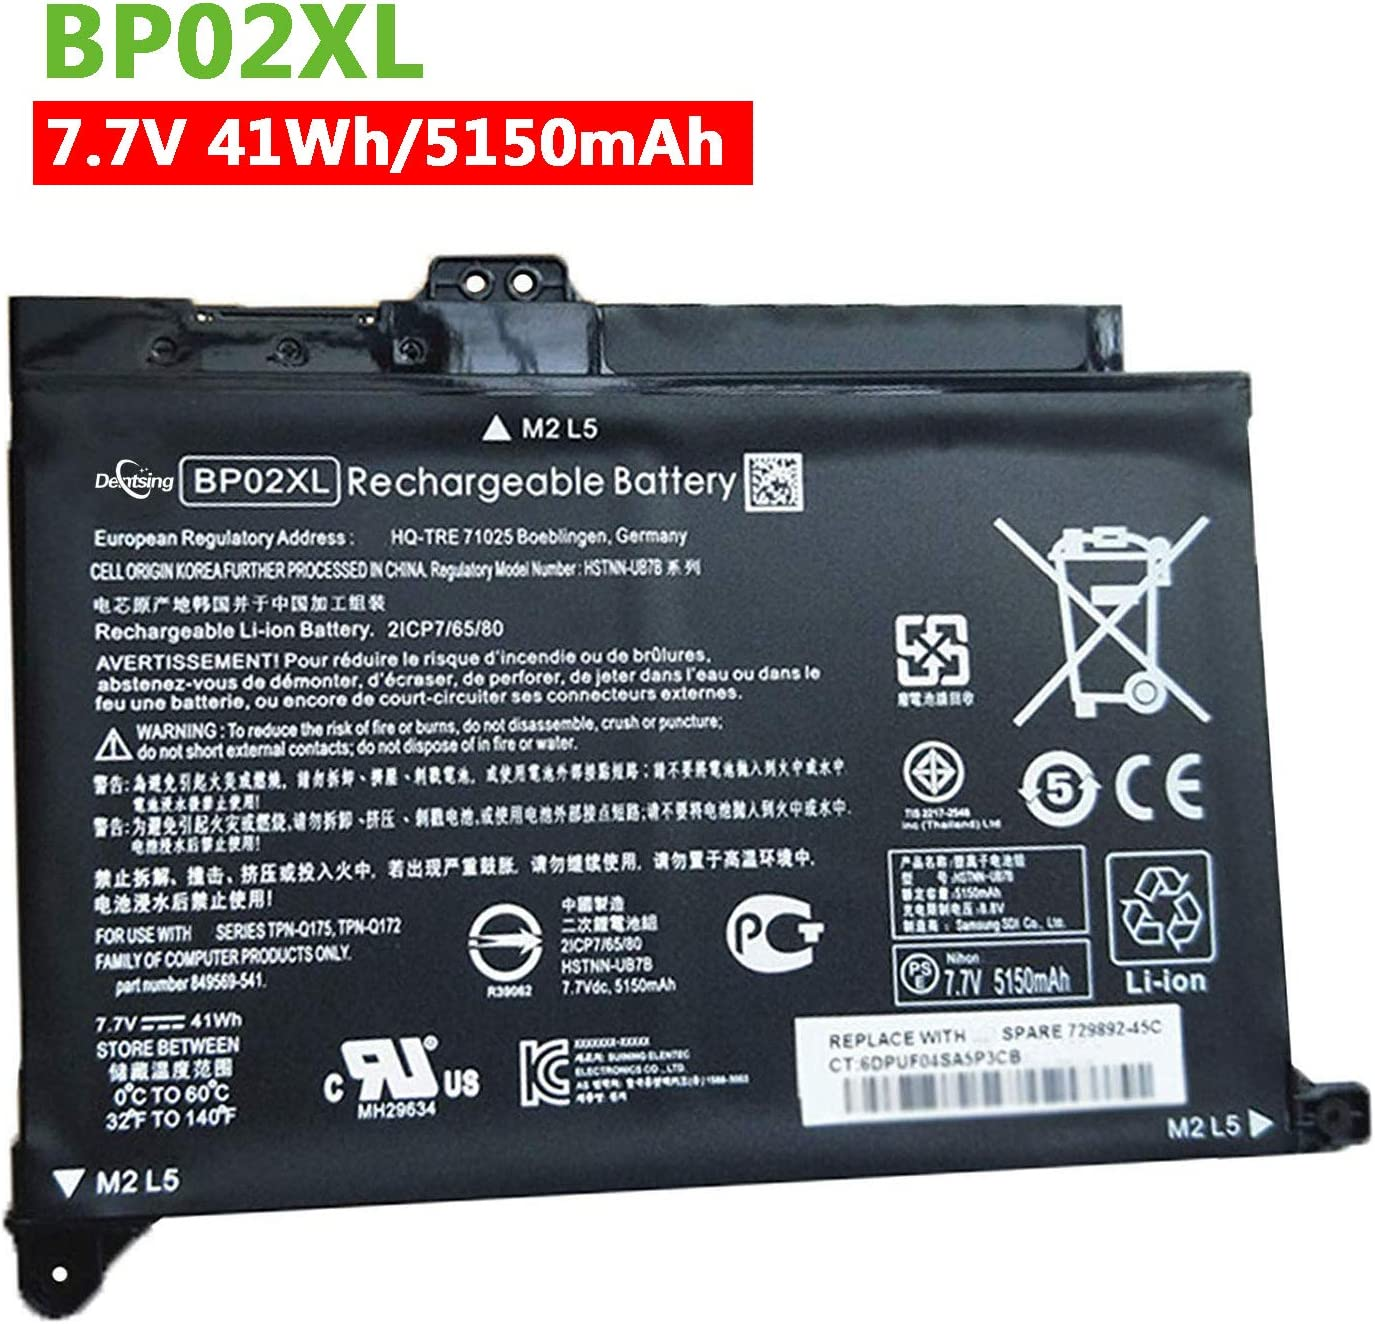 Dentsing Replacement BP02XL Laptop Battery Compatible HP Pavilion PC 15 15-AU000 15-AU010WM 15-AU018WM 15-AW000 Series HSTNN-UB7B HSTNN-LB7H 2ICP7/65/80 849569-421 849569-541 849569-542 7.7V 41Wh